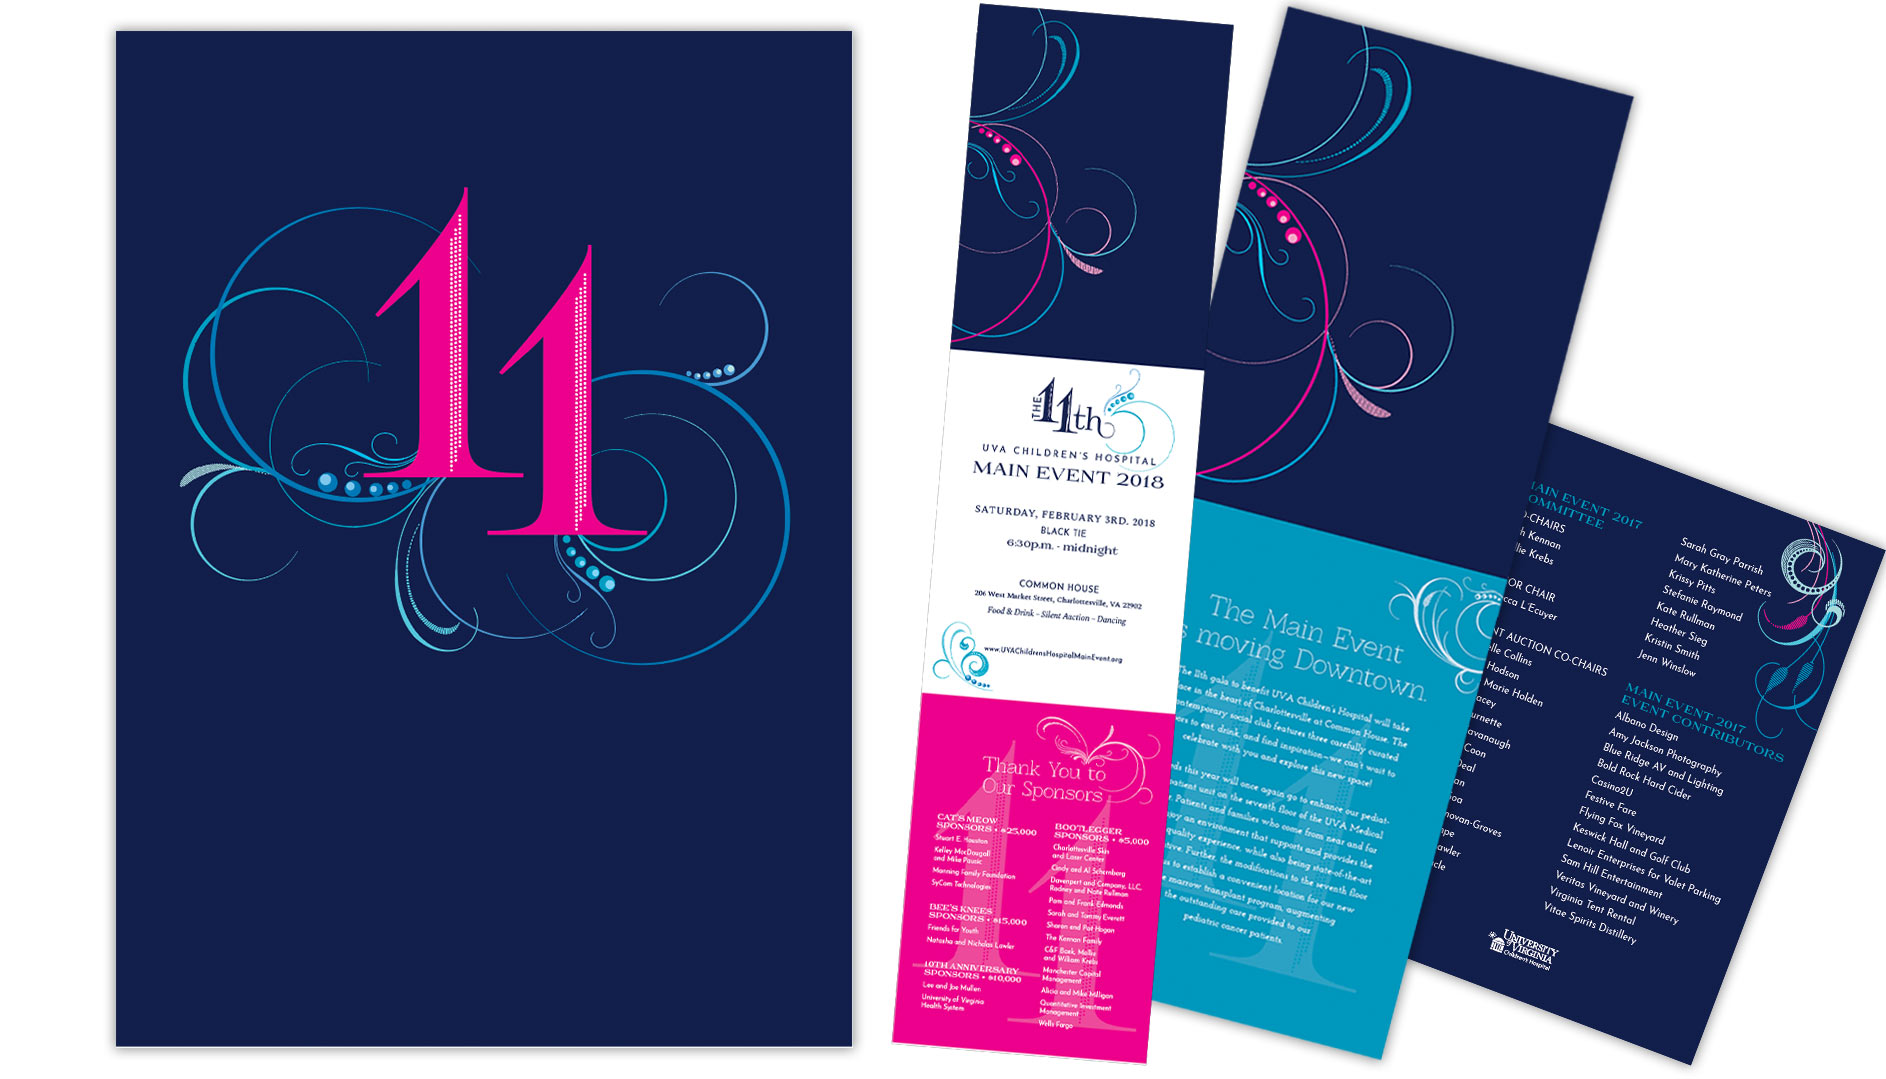 uva children's hospital main event gala invitation package